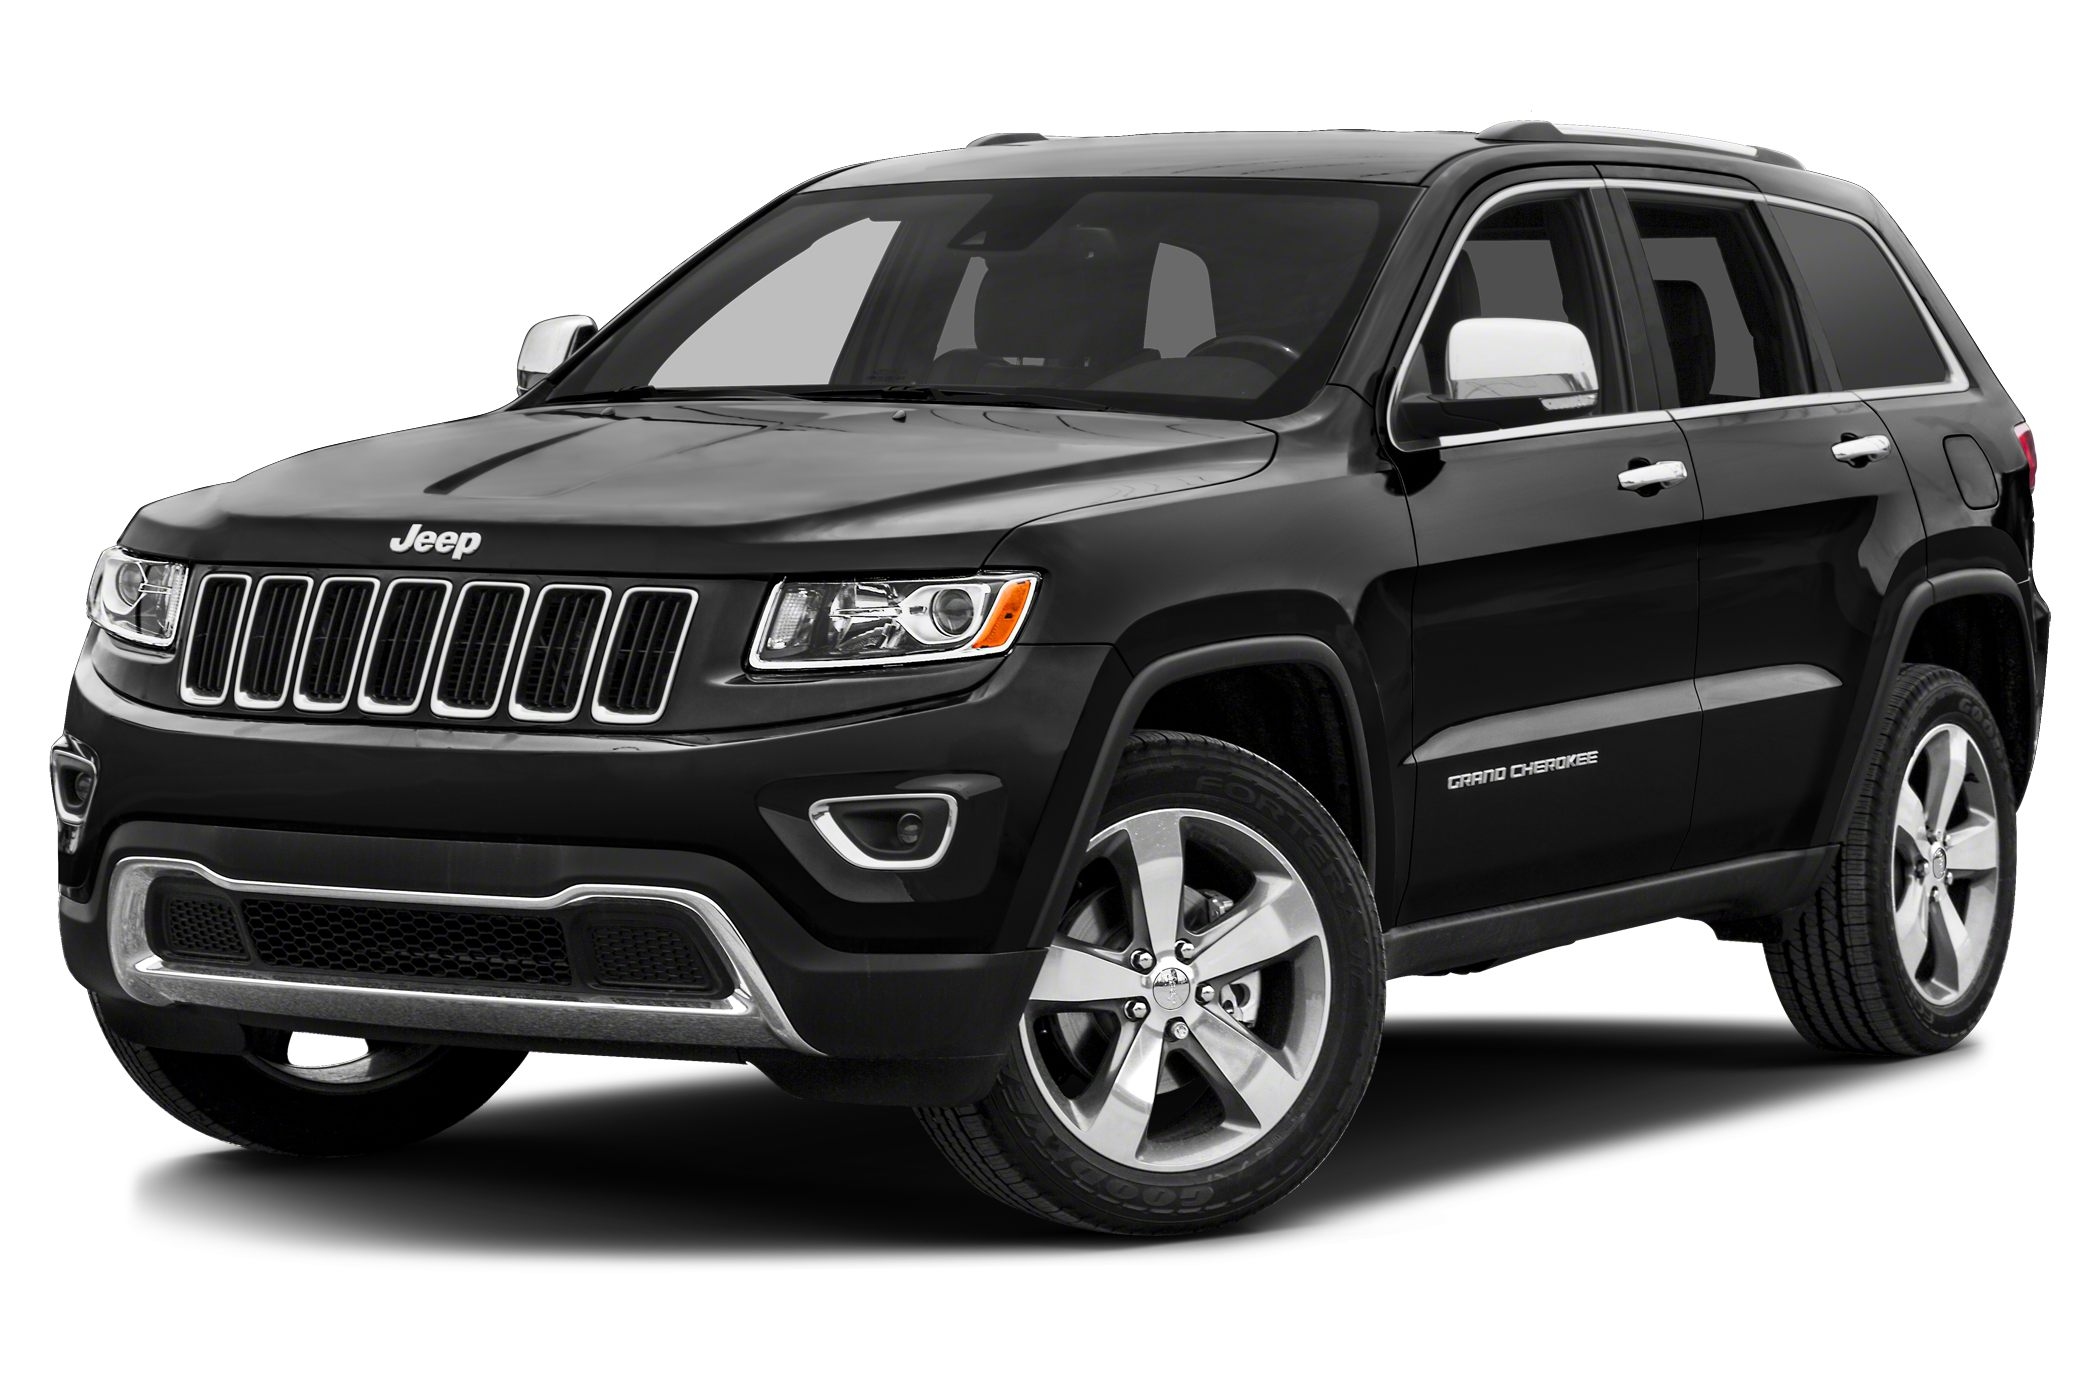 2014 Jeep Grand Cherokee Limited SUV for sale in Waseca for $32,999 with 20,530 miles